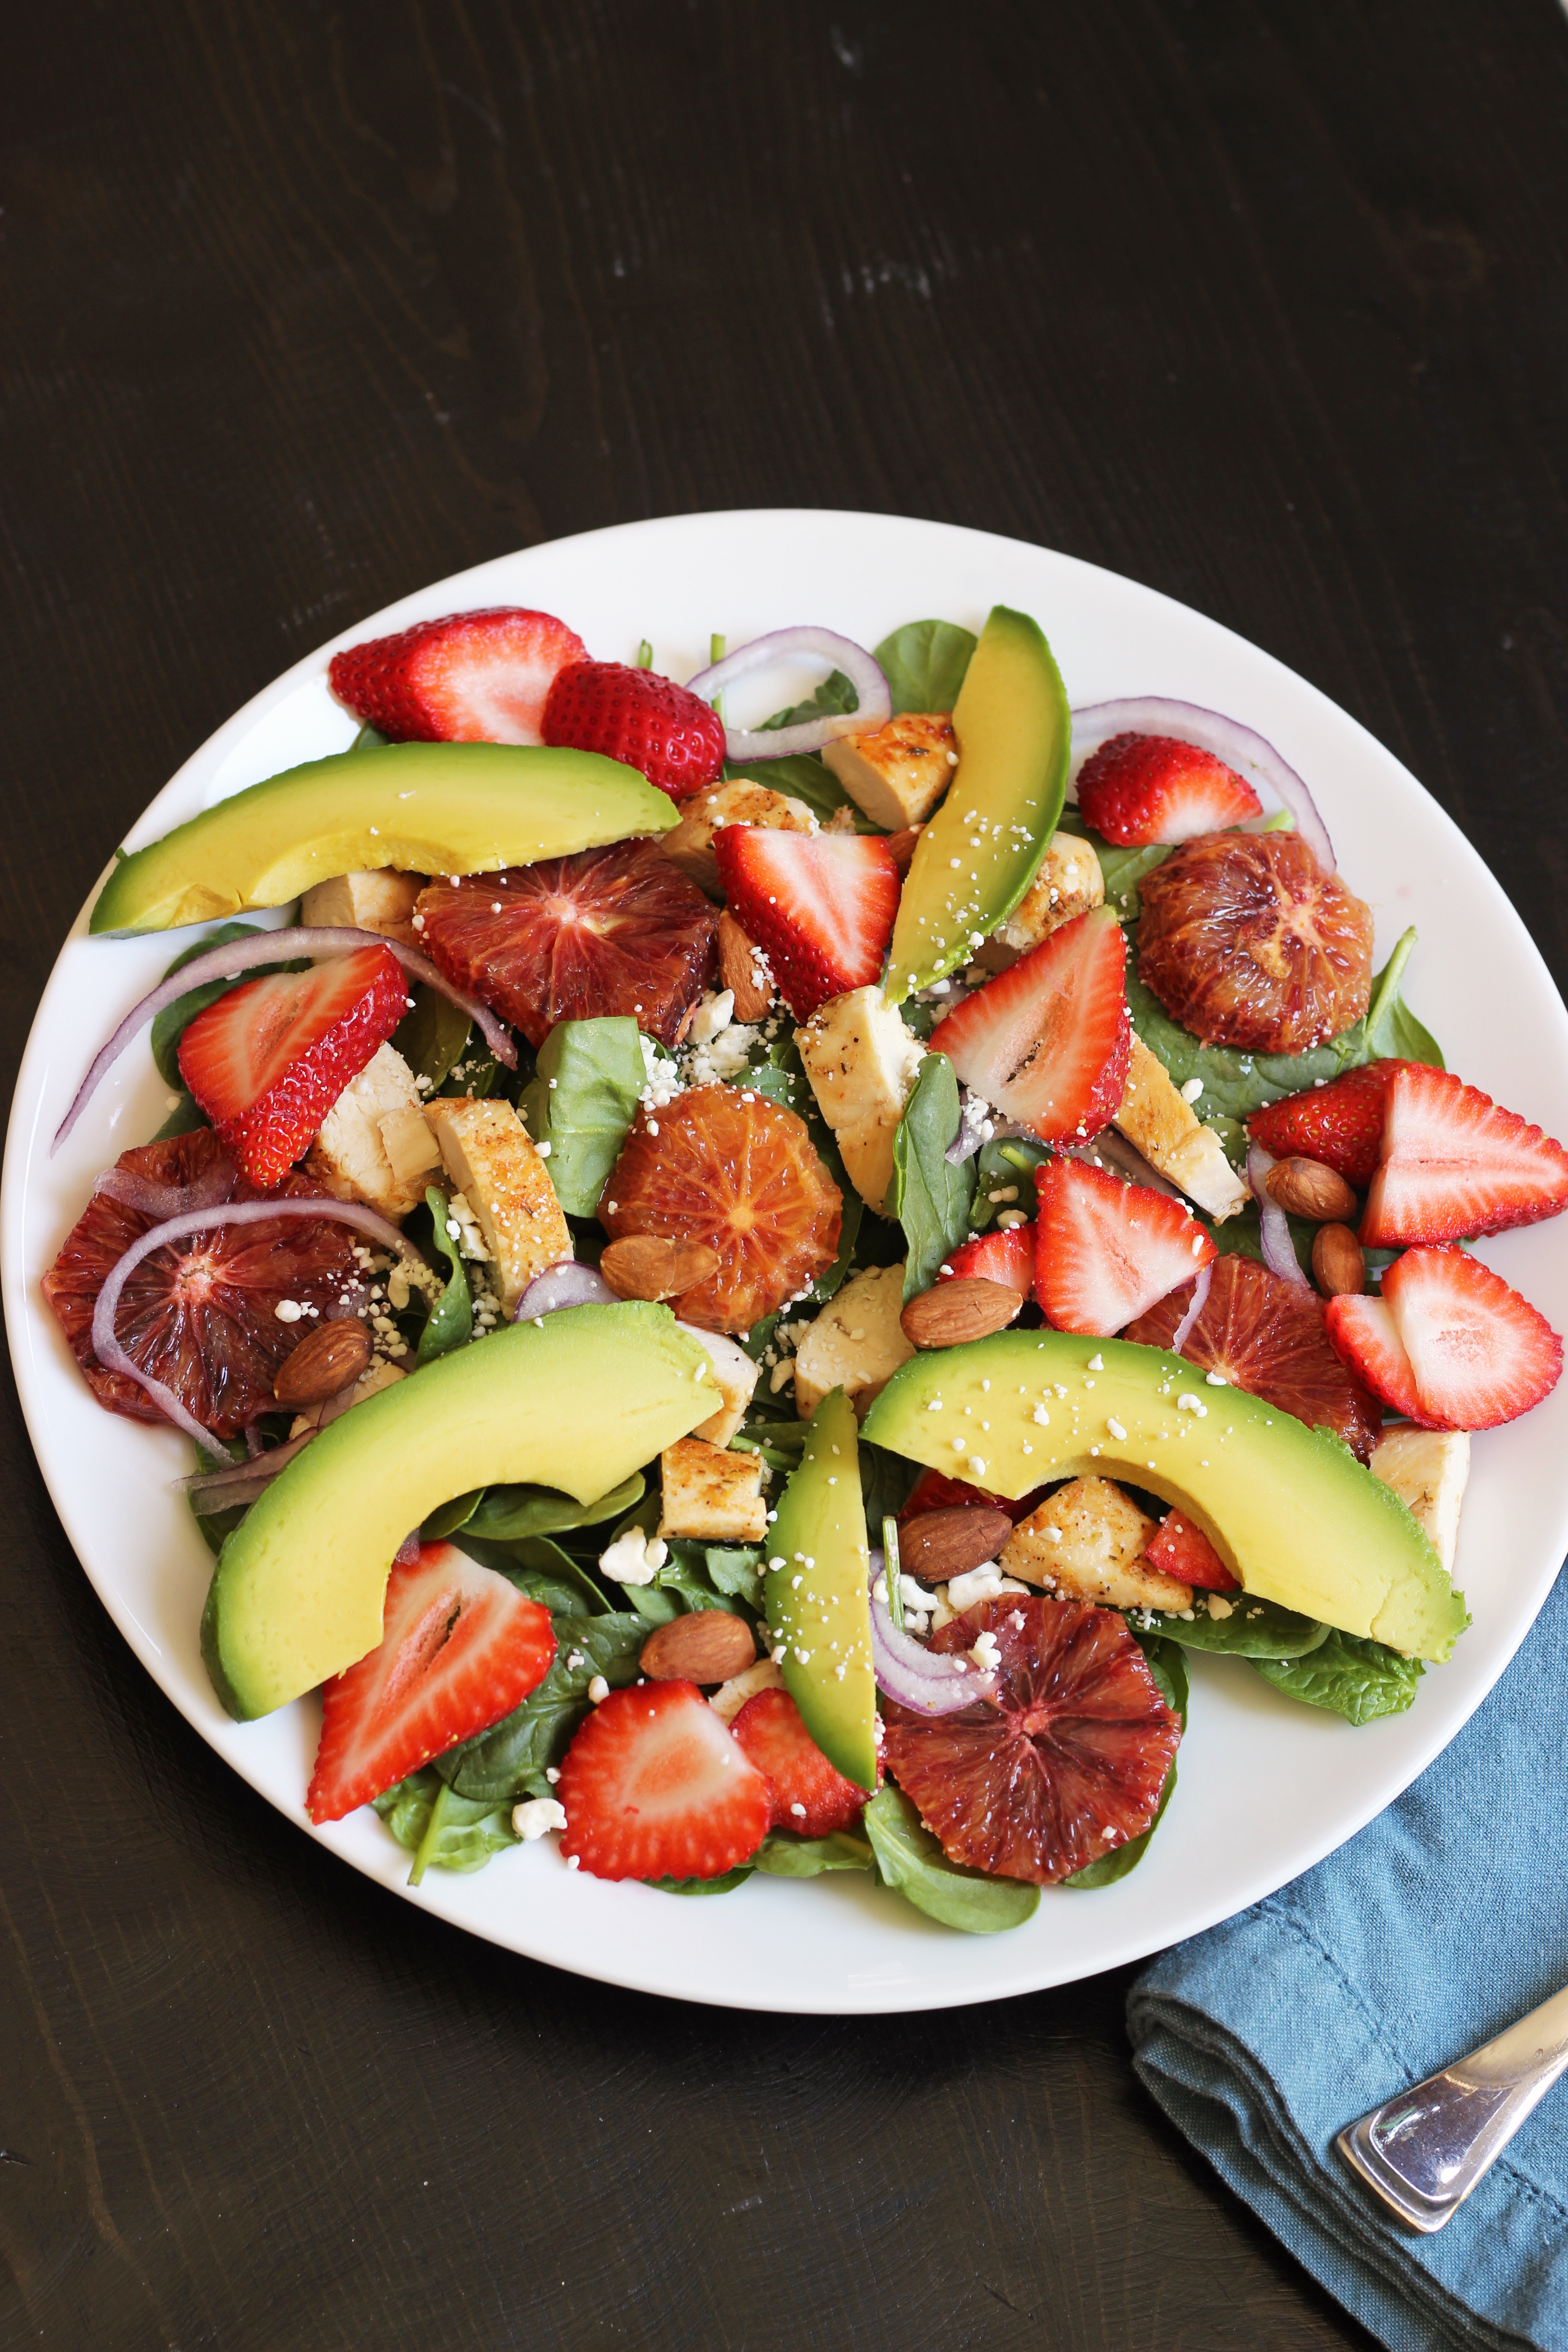 spinach salad with chicken, strawberries, and other fruit